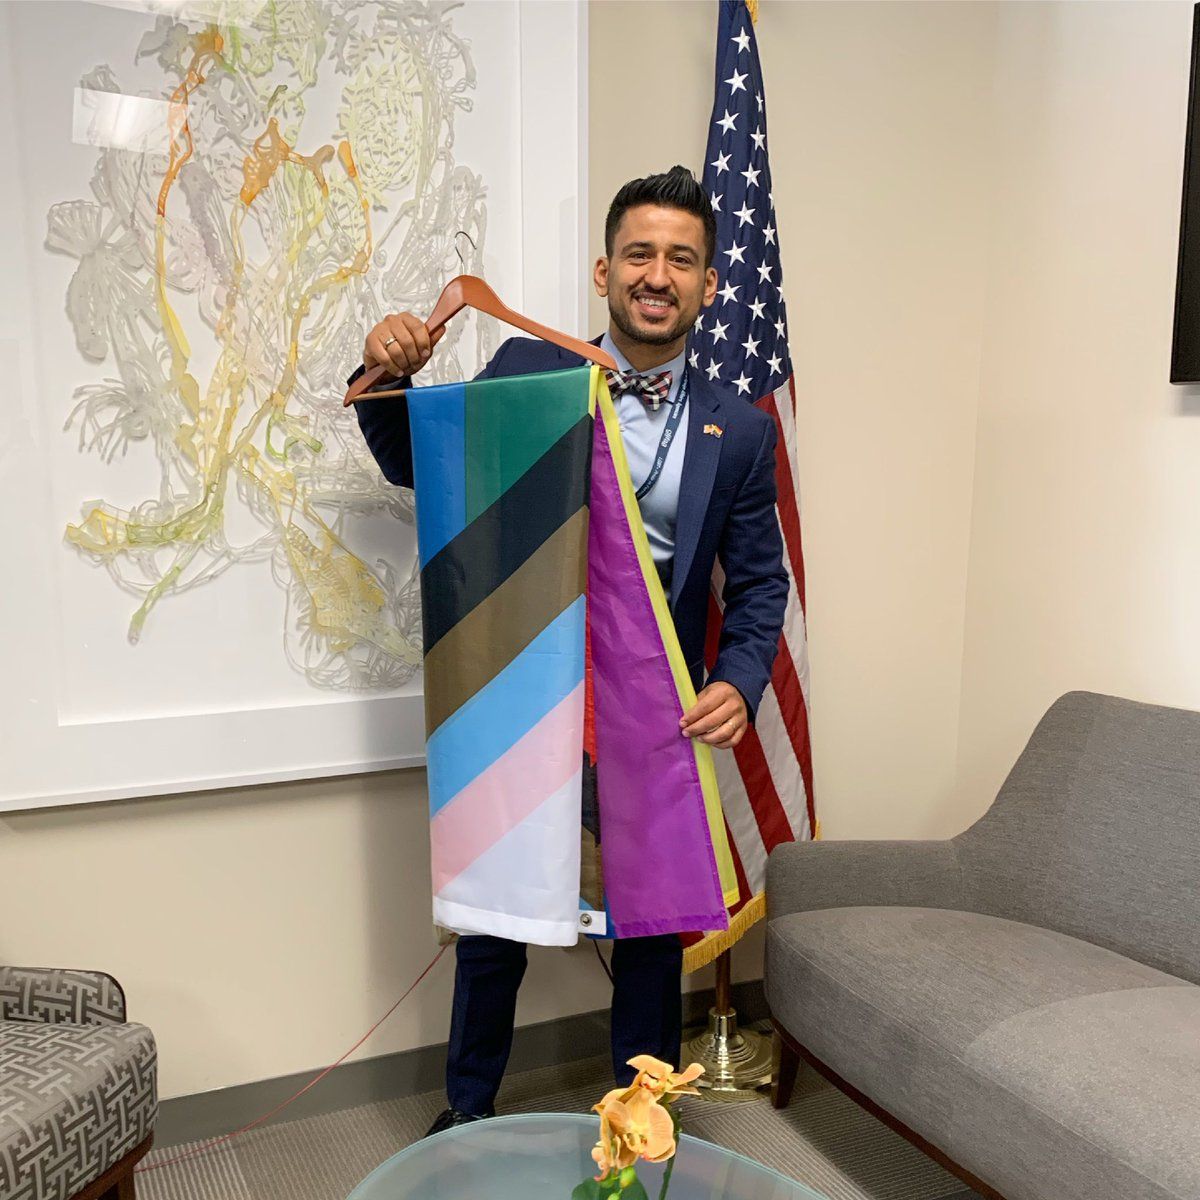 The flag has been steamed and ready to be hung on the main pole at the @StateDept for the first time in history. See you at 3:30p.m. @OutInNatSec @Global_Equality @CapehartJ #servingwithpride @ShalomKon https://t.co/4vPL8cxT2o